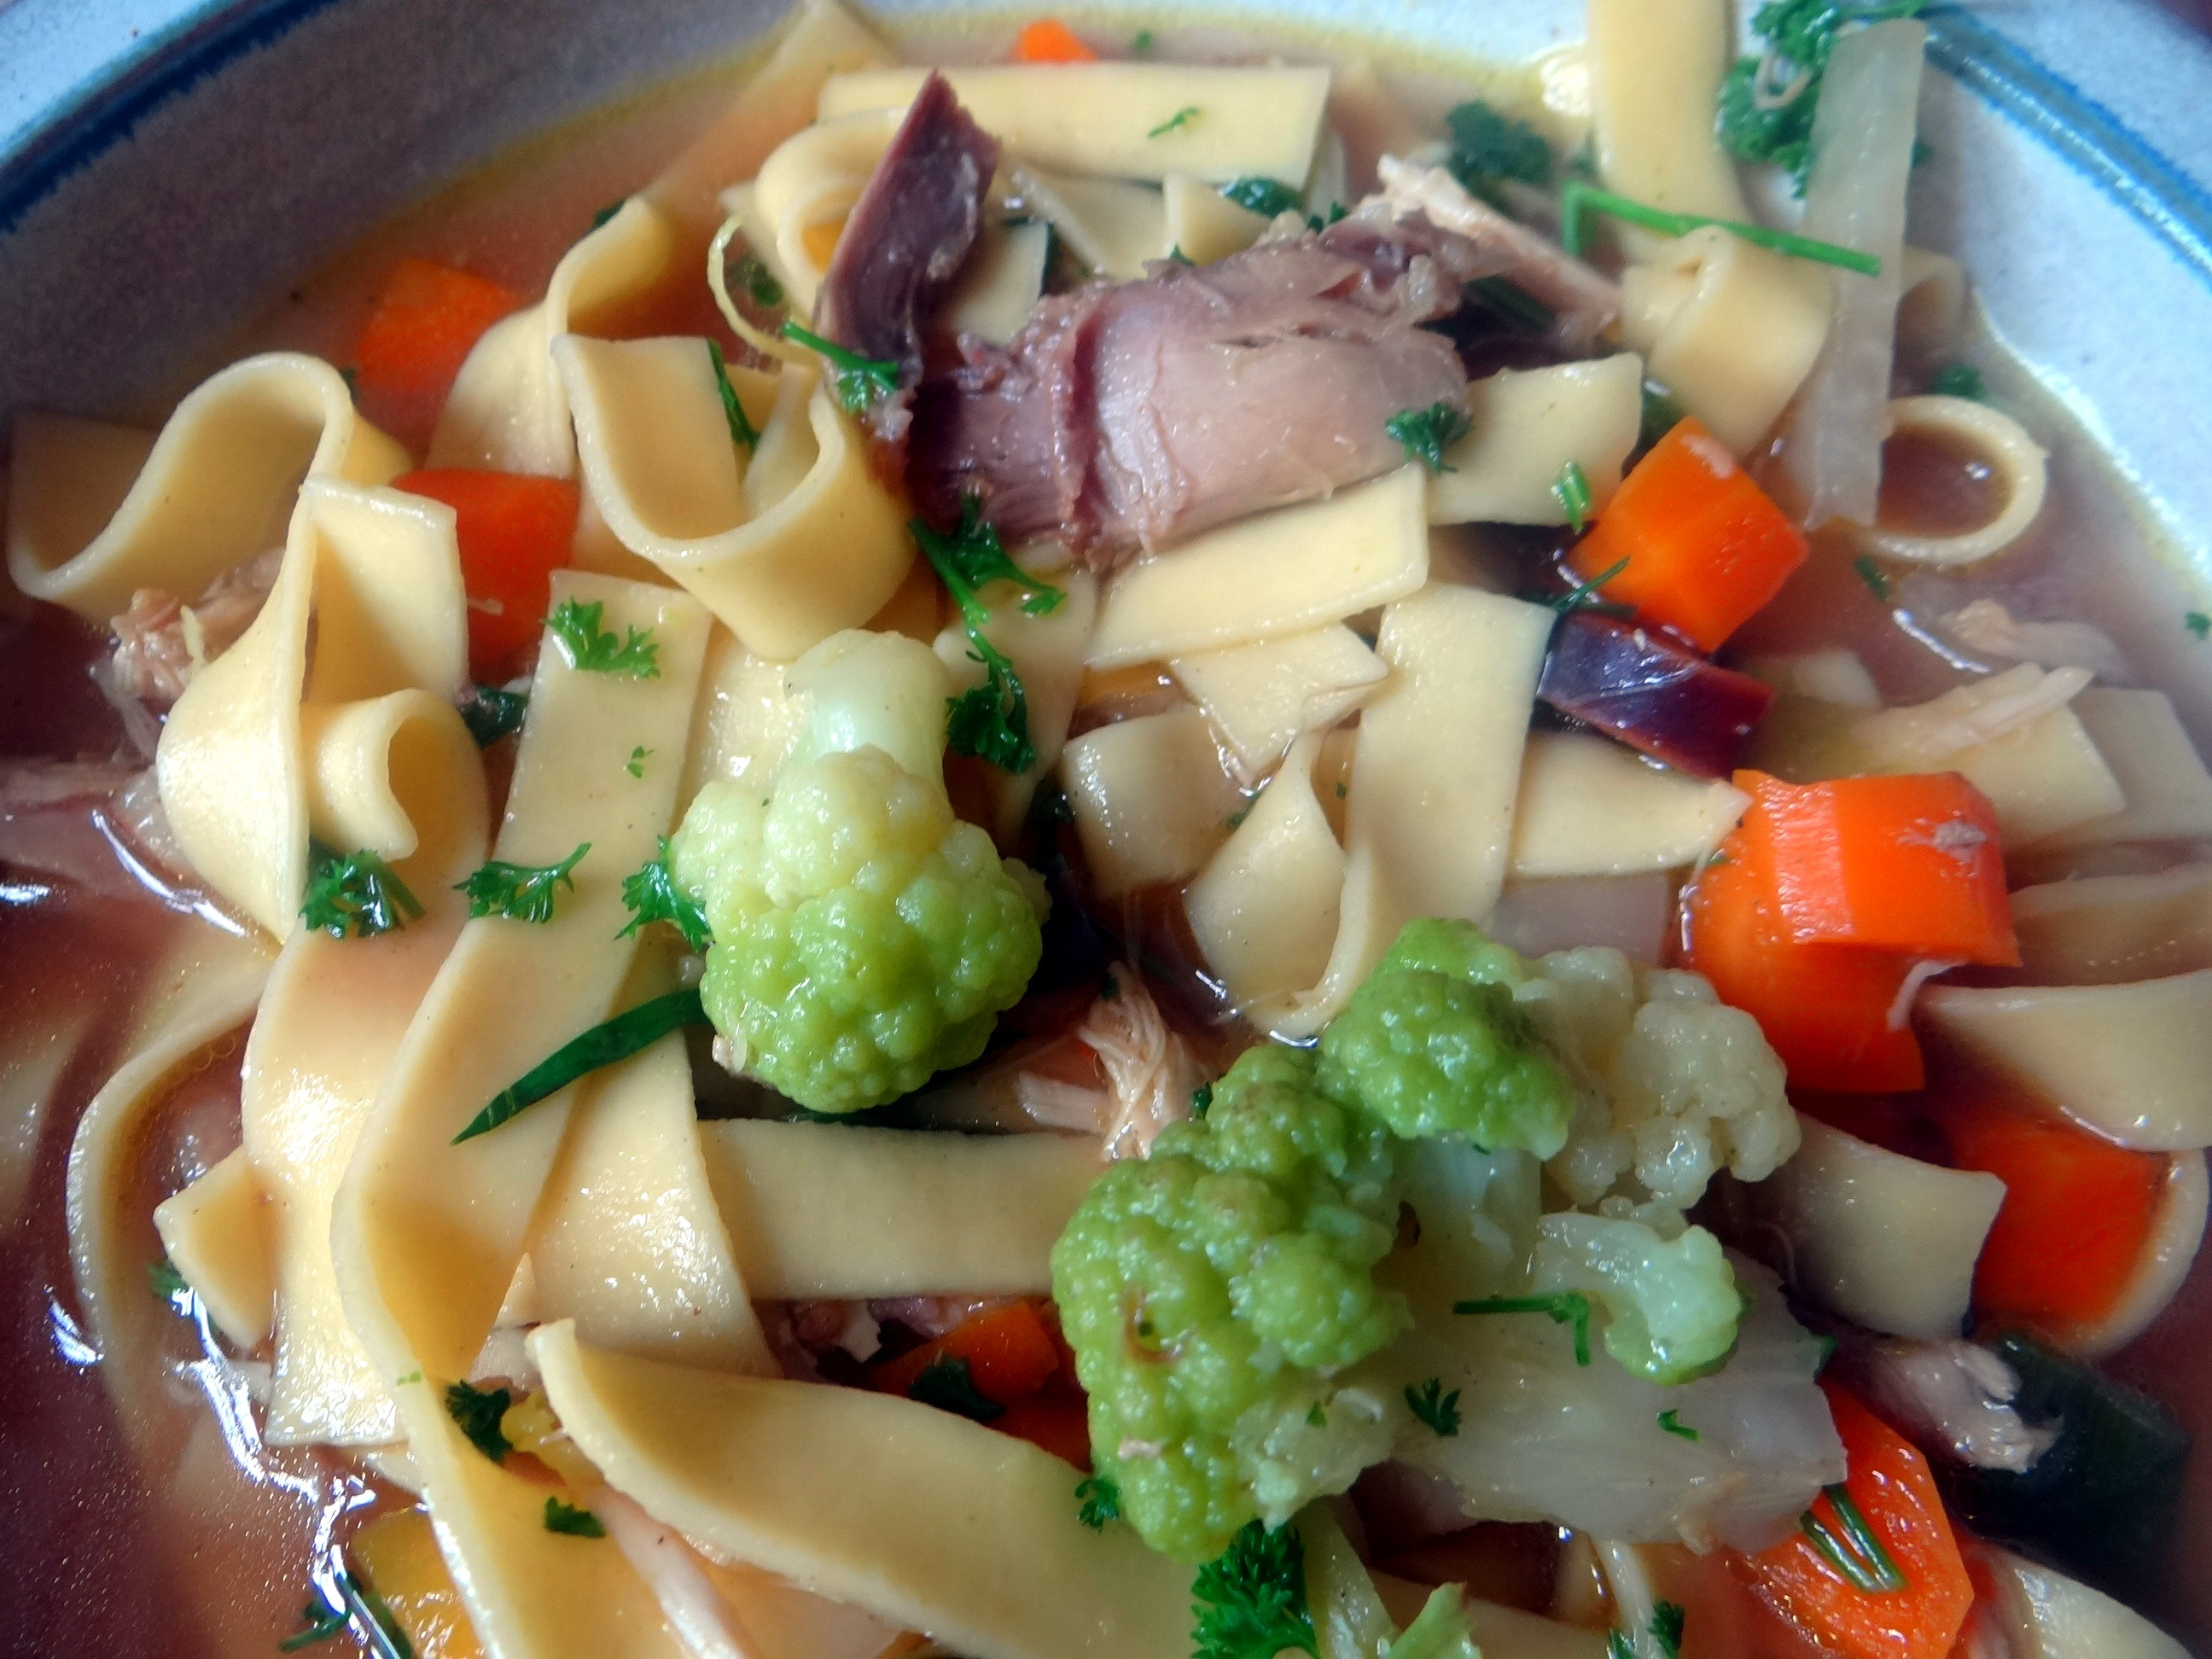 Nudelsuppe-4..7 (4)